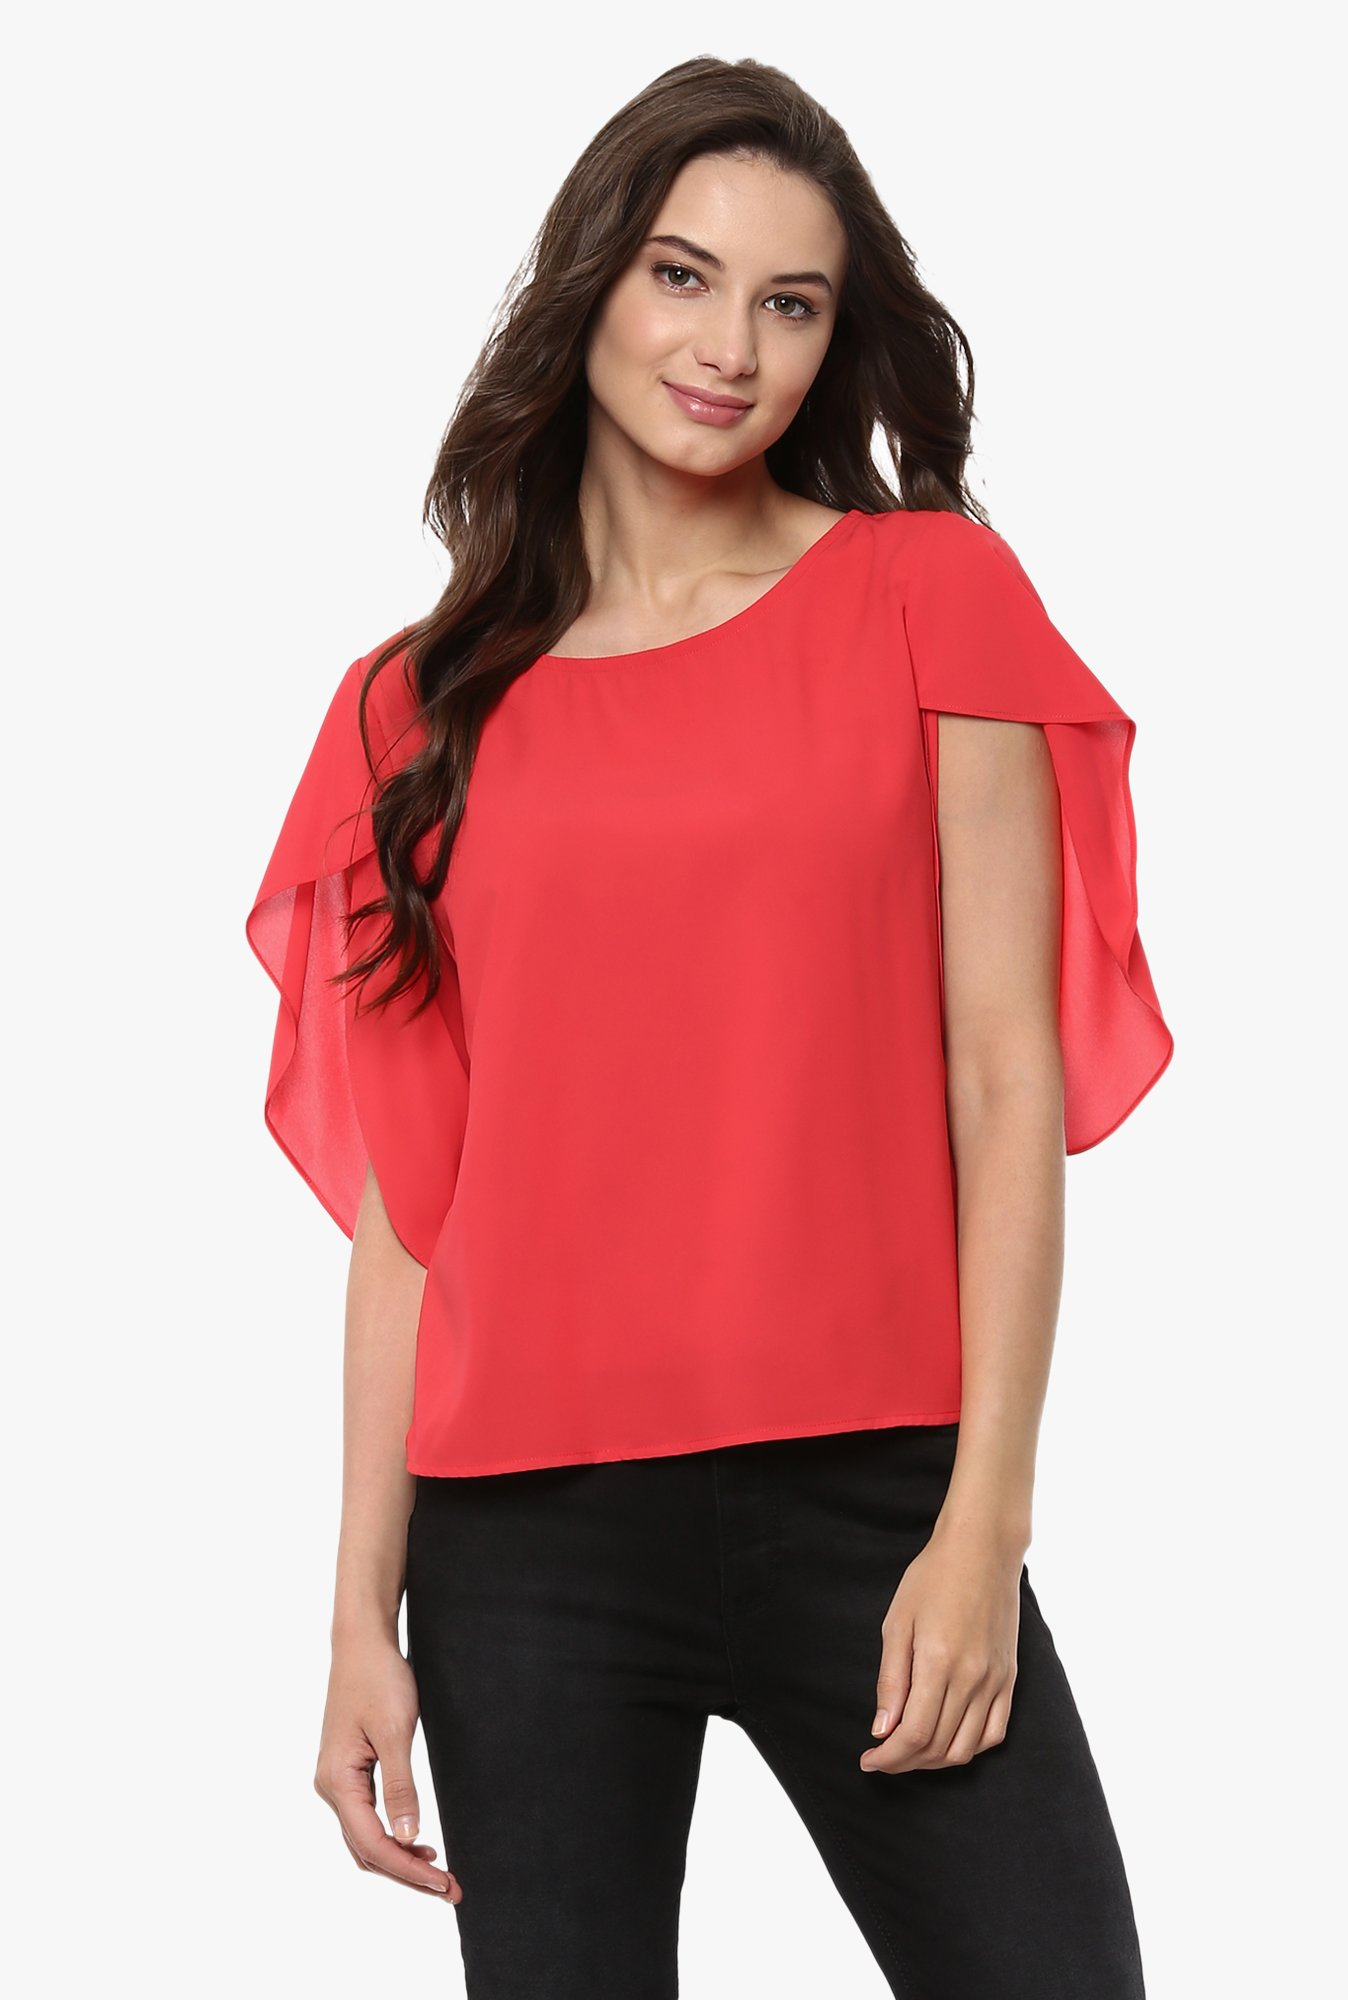 Pannkh Coral Polyester Top